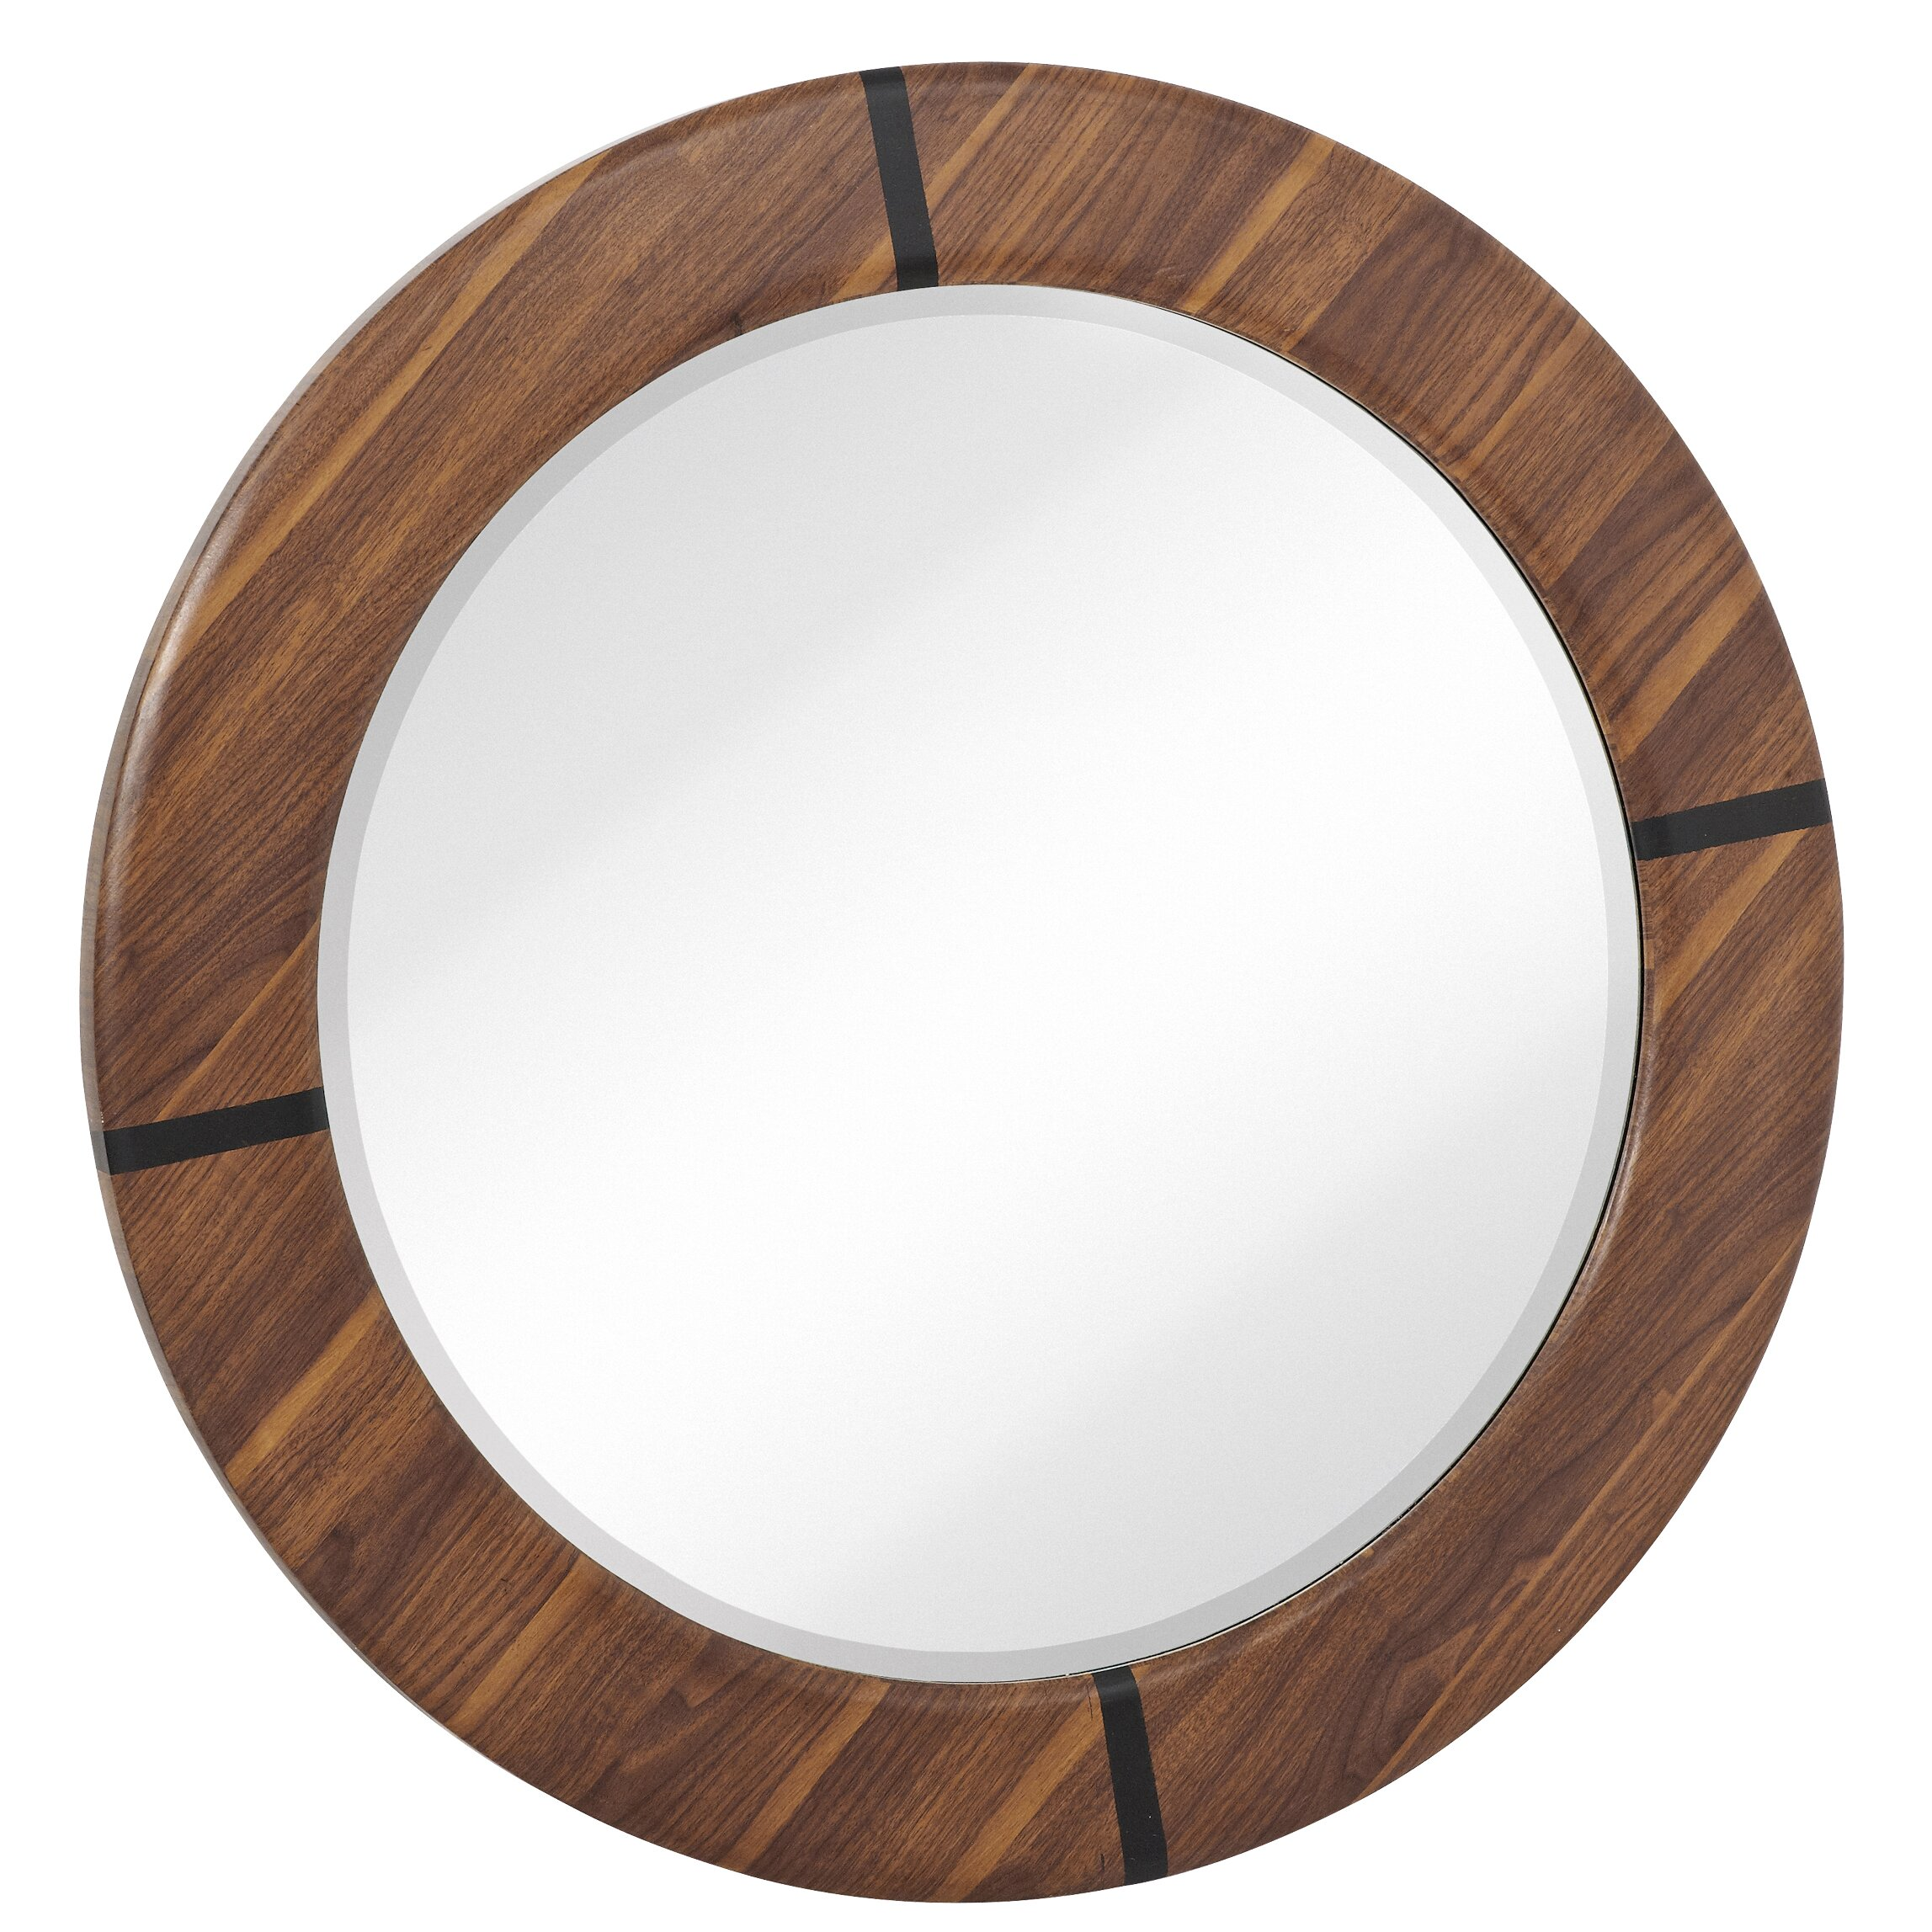 Majestic mirror round modern walnut beveled glass framed Round framed mirror